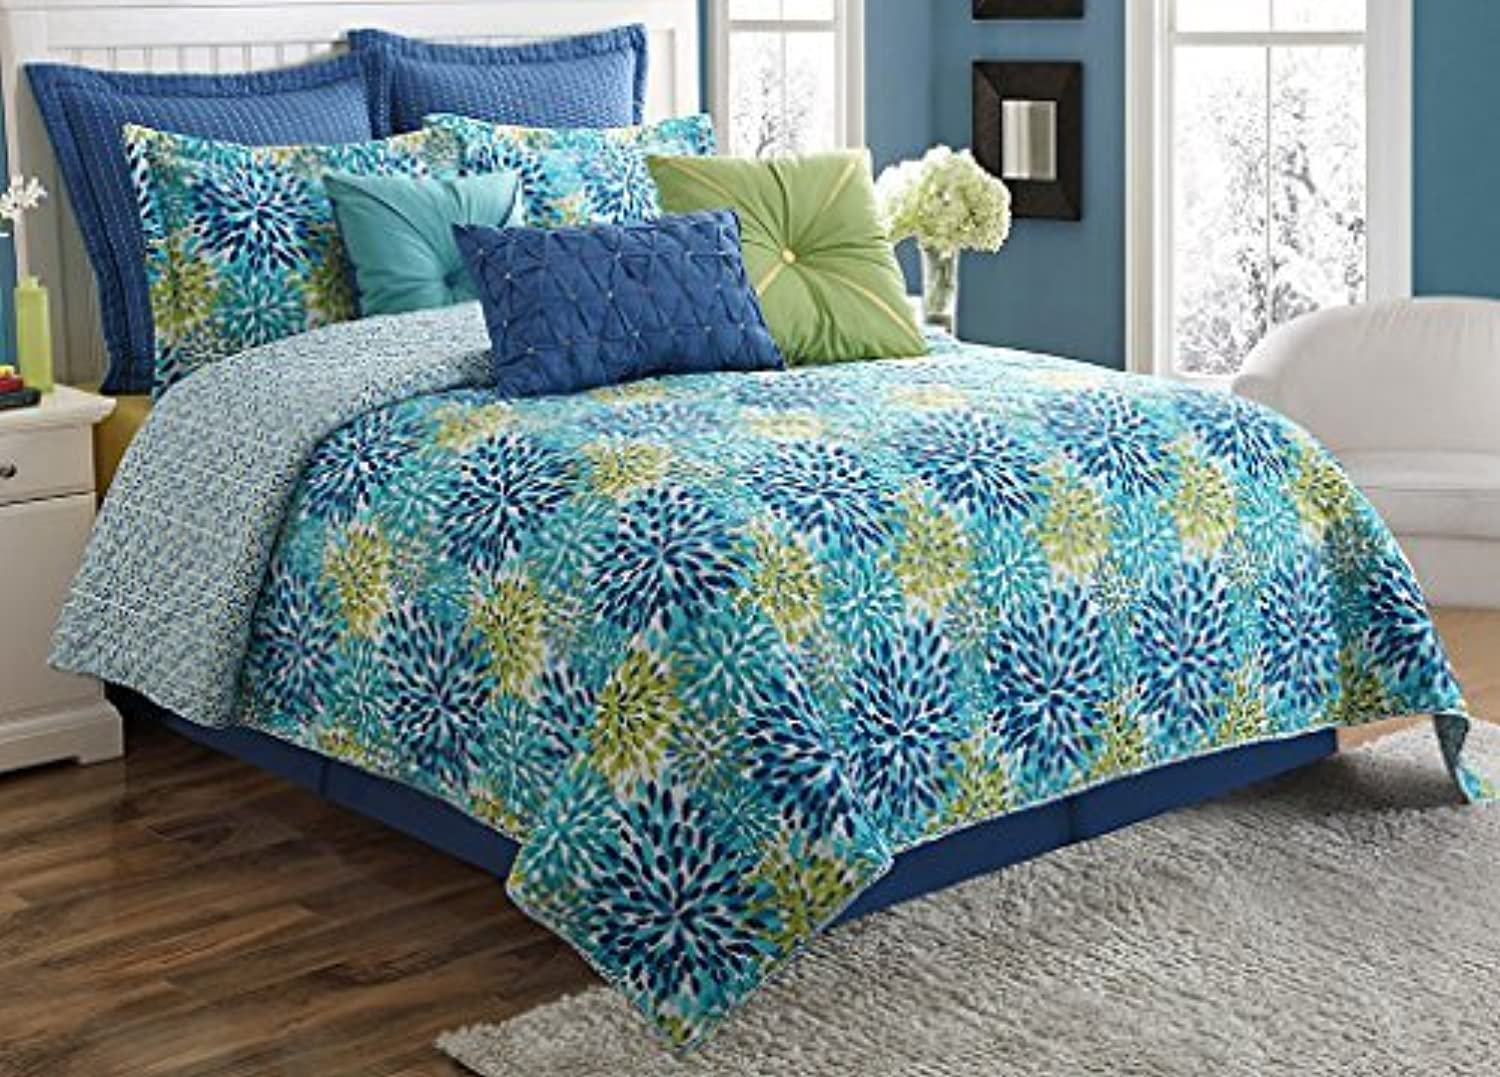 Fiesta Calypso Reversible Quilt Set-Full Queen-with 2 Pillow Shams